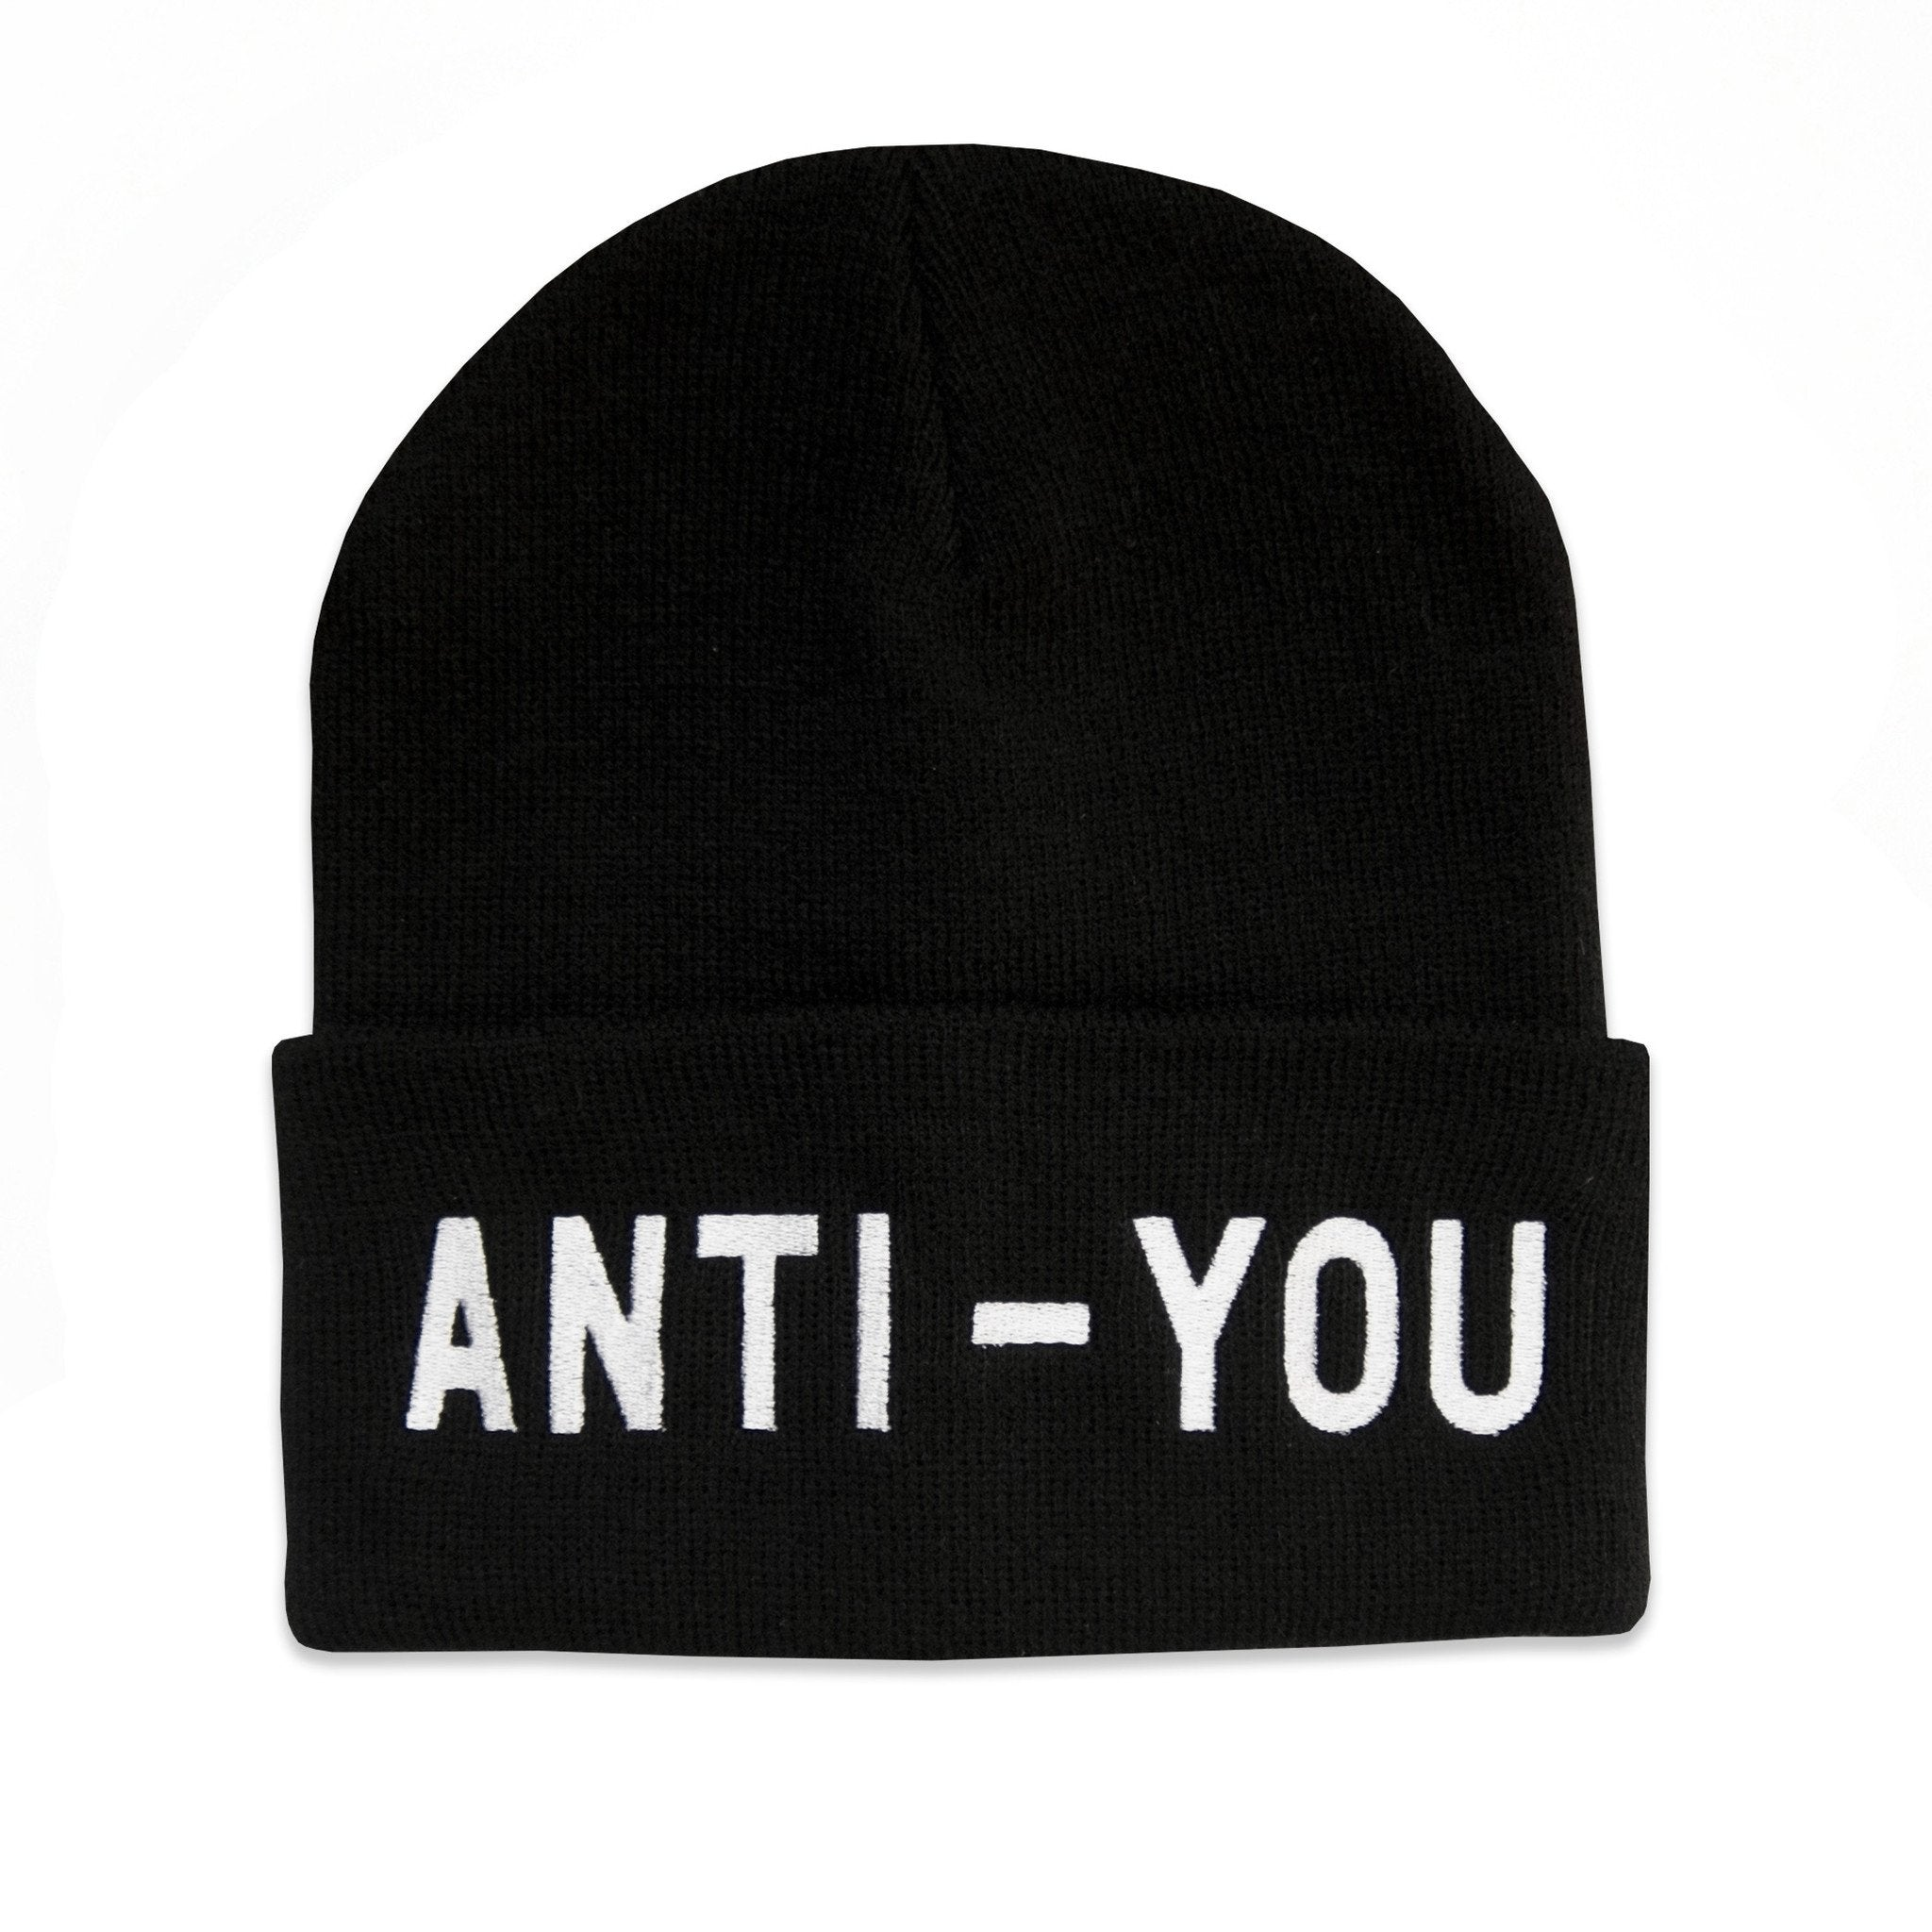 3D Embroidered Beanie- Goth